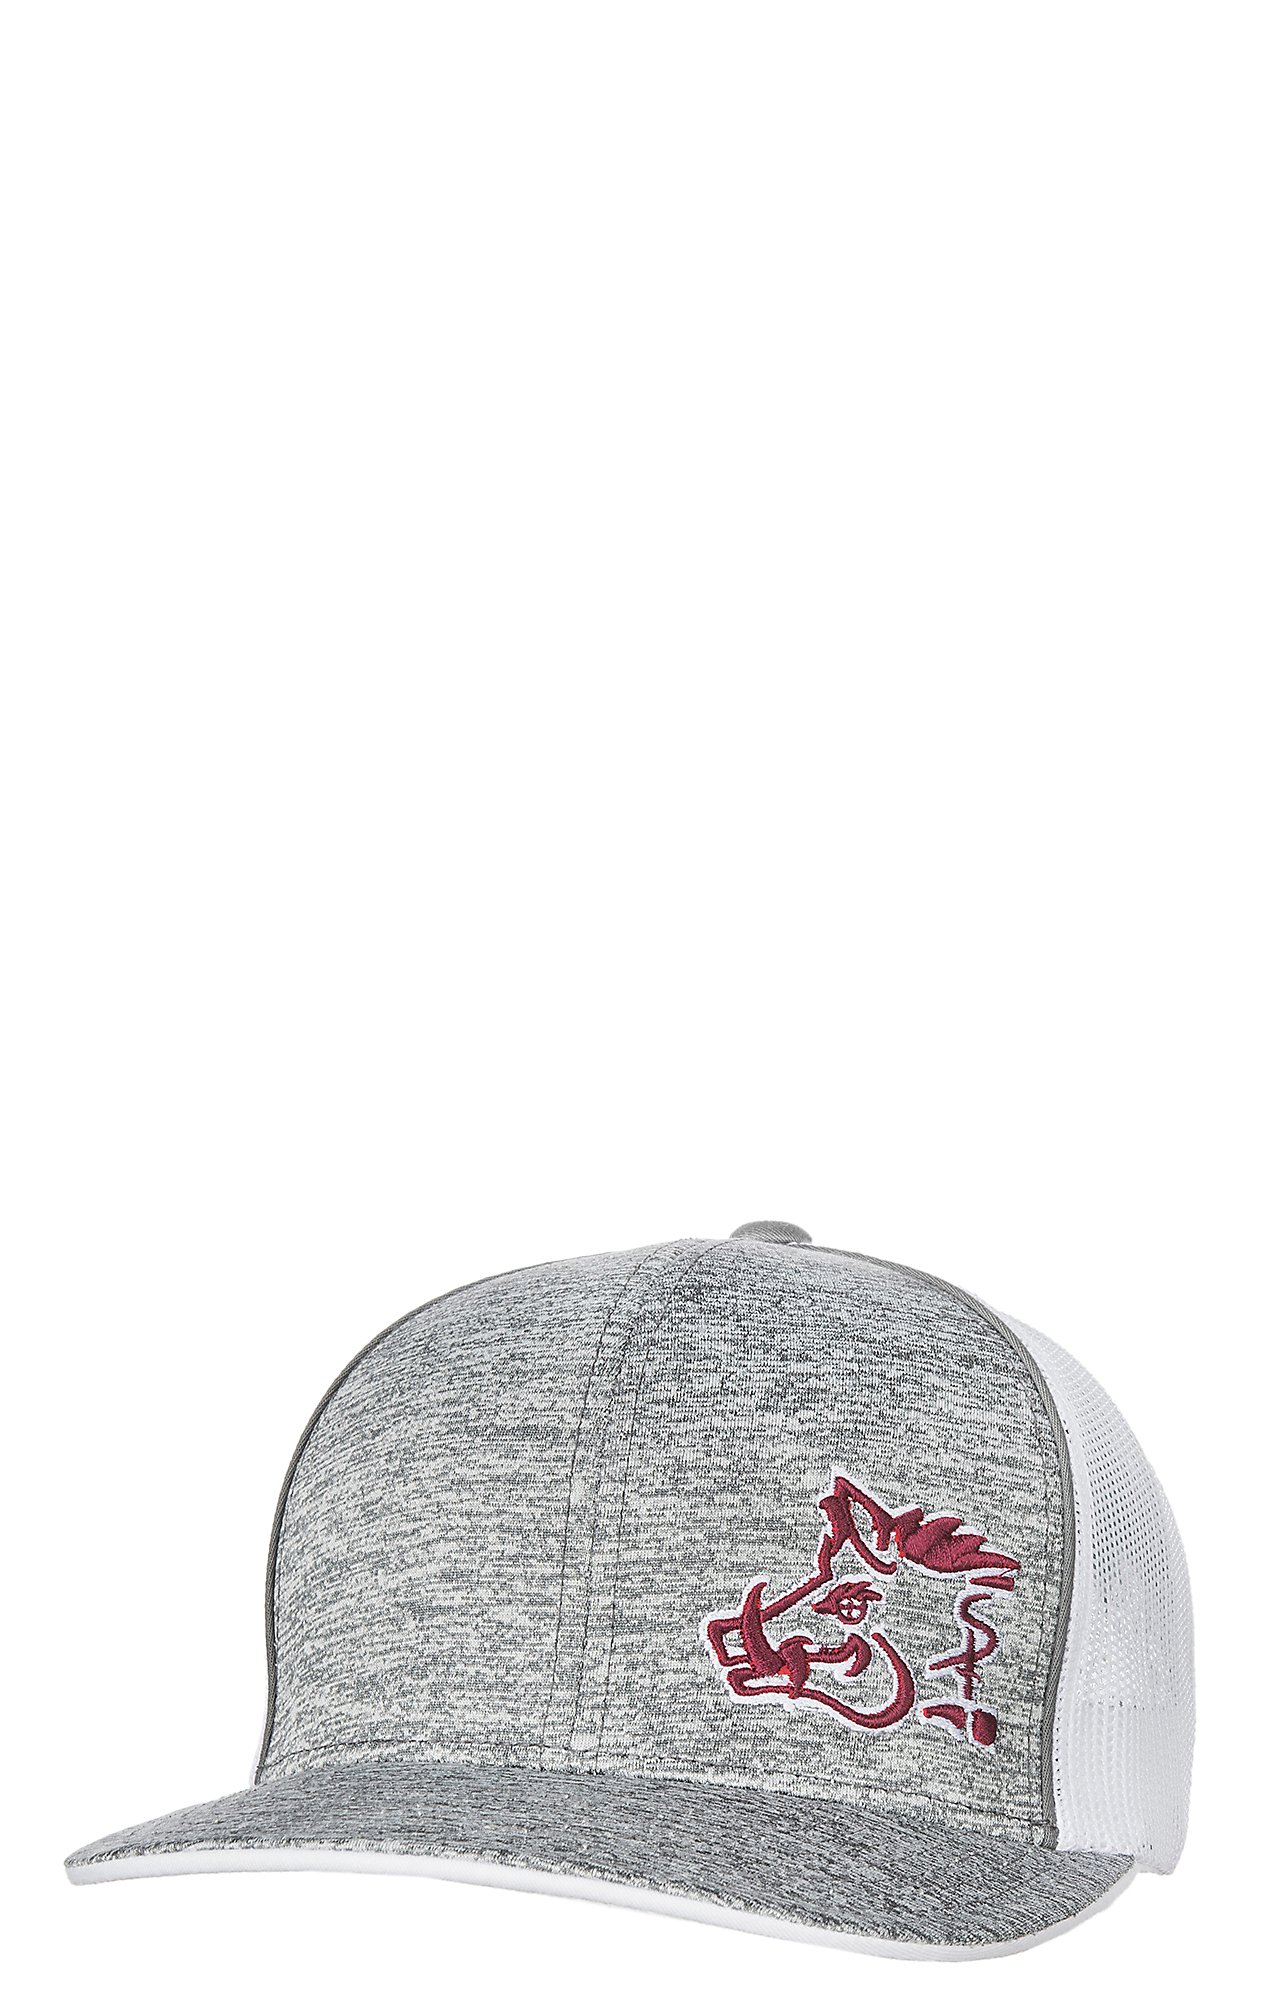 6aeb53087d8 Sniper Pig Heather Grey Maroon Logo w  White Mesh Snap Back Cap ...